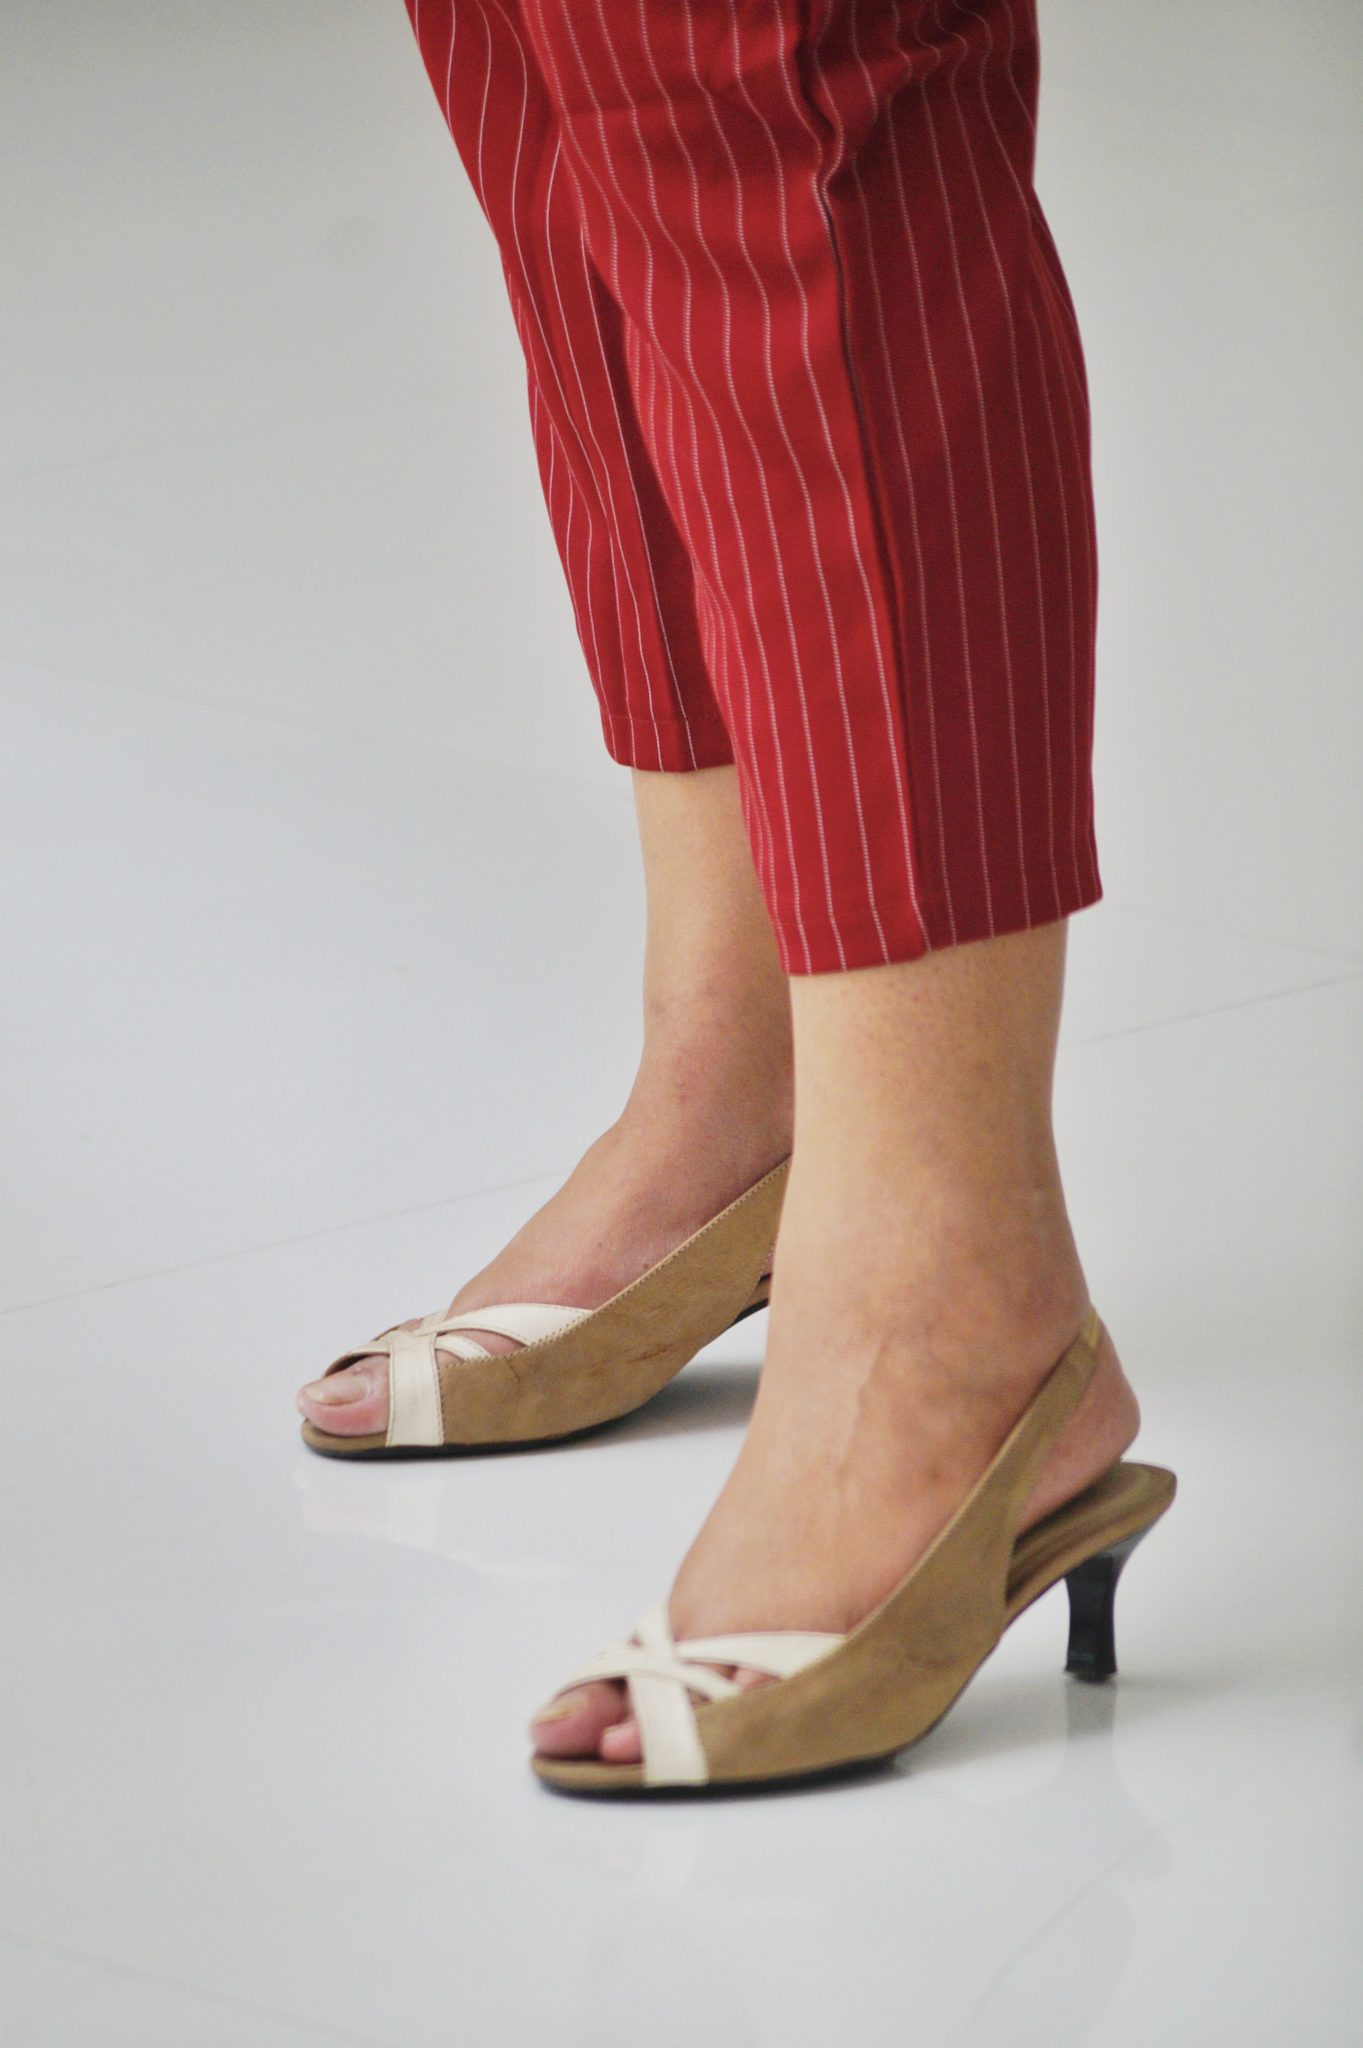 Style Trousers In Three Different Ways, footwear